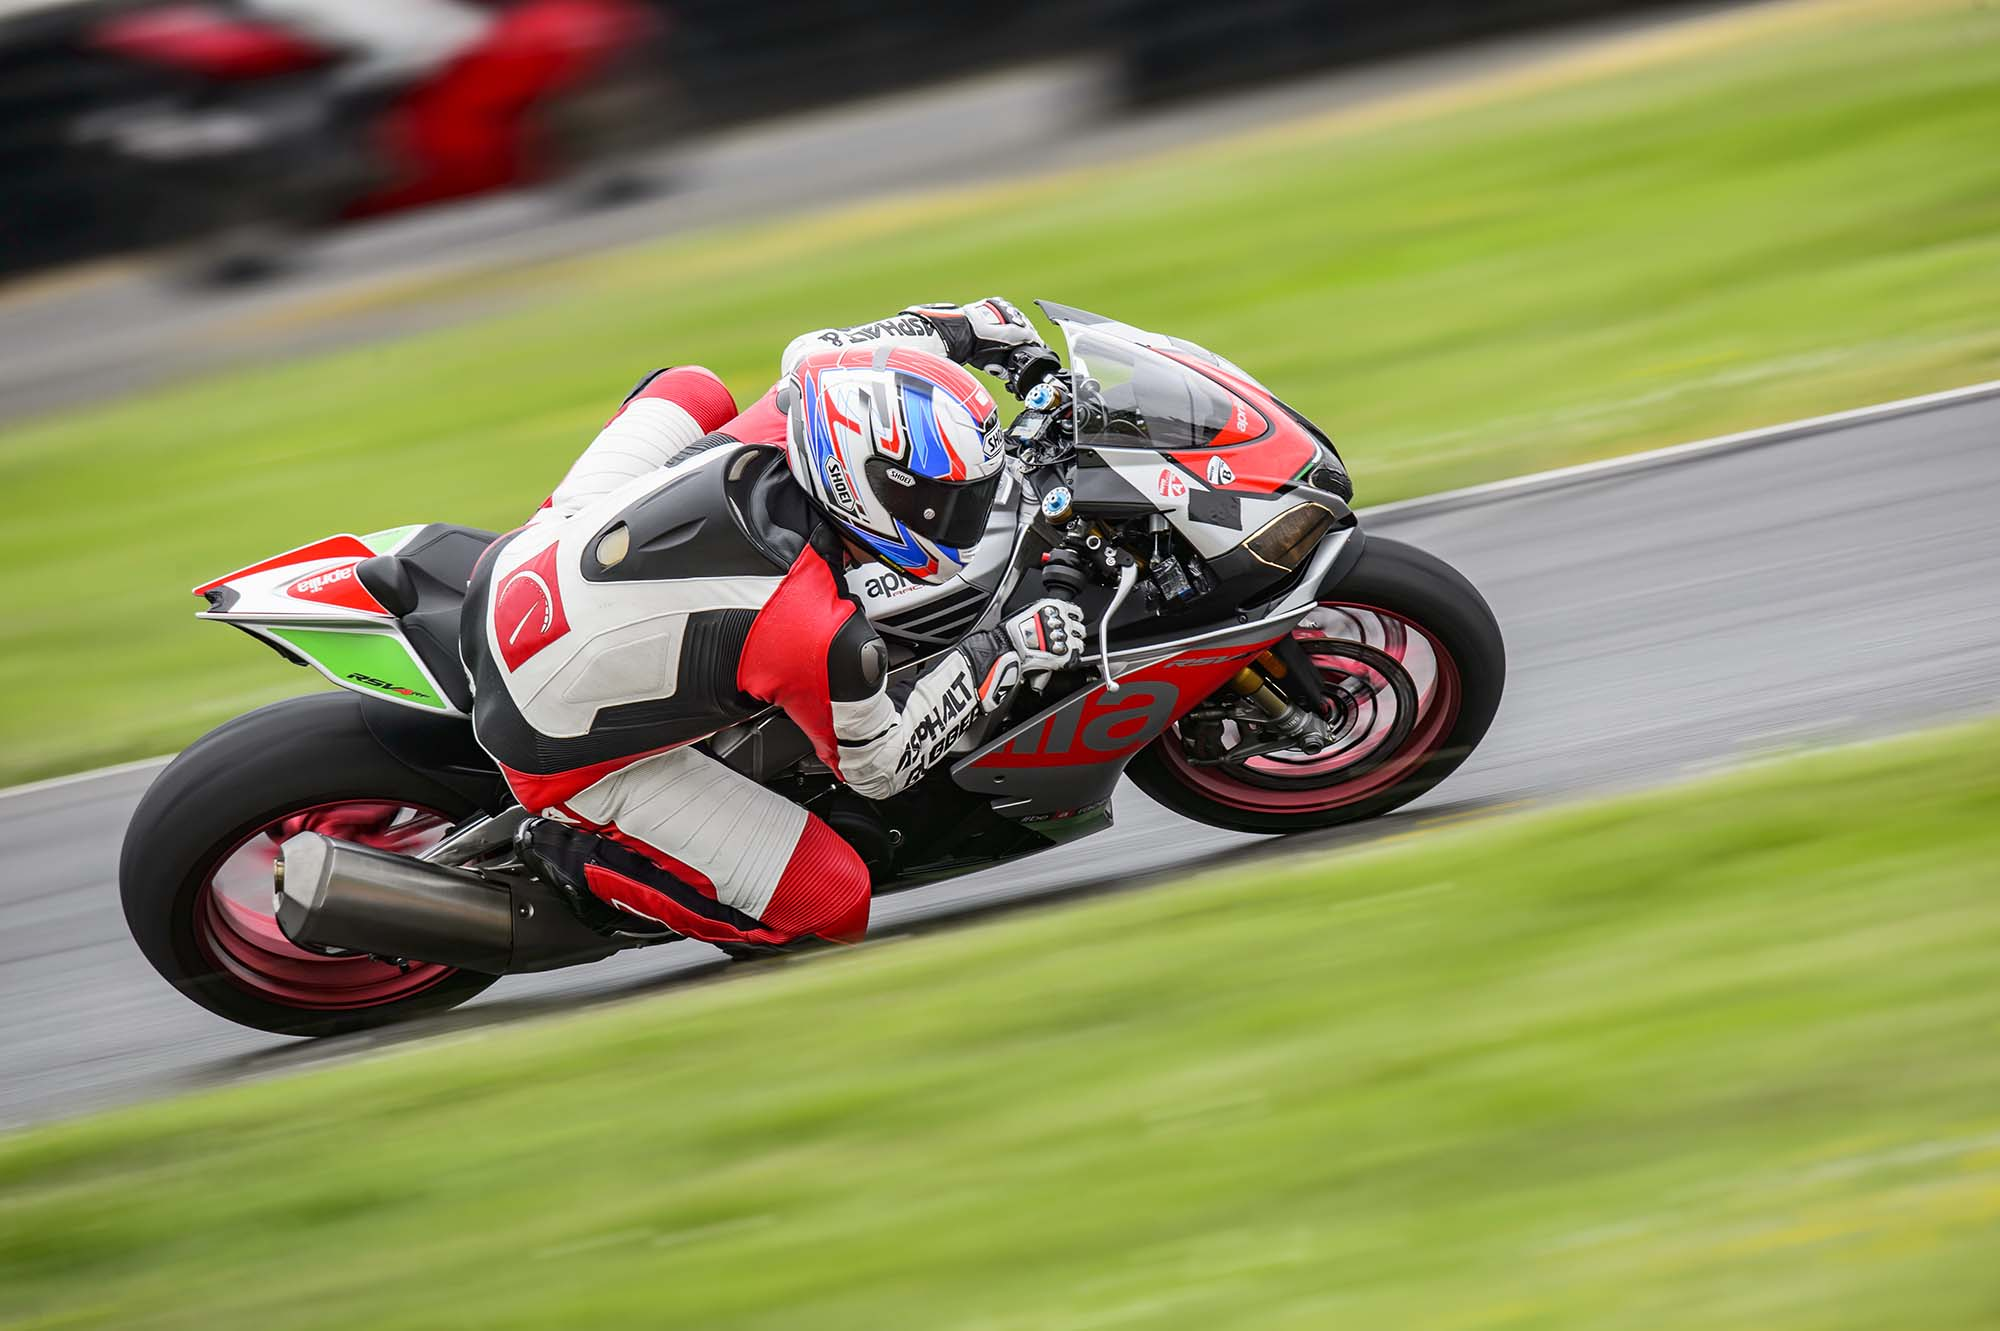 Superbike Deathmatch Round 1 Aprilia Vs Ducati Asphalt Rubber Wiring Diagram Turning Our Attention To The Throttle Connection For Two Bikes We Again Found Some Disparity Between And